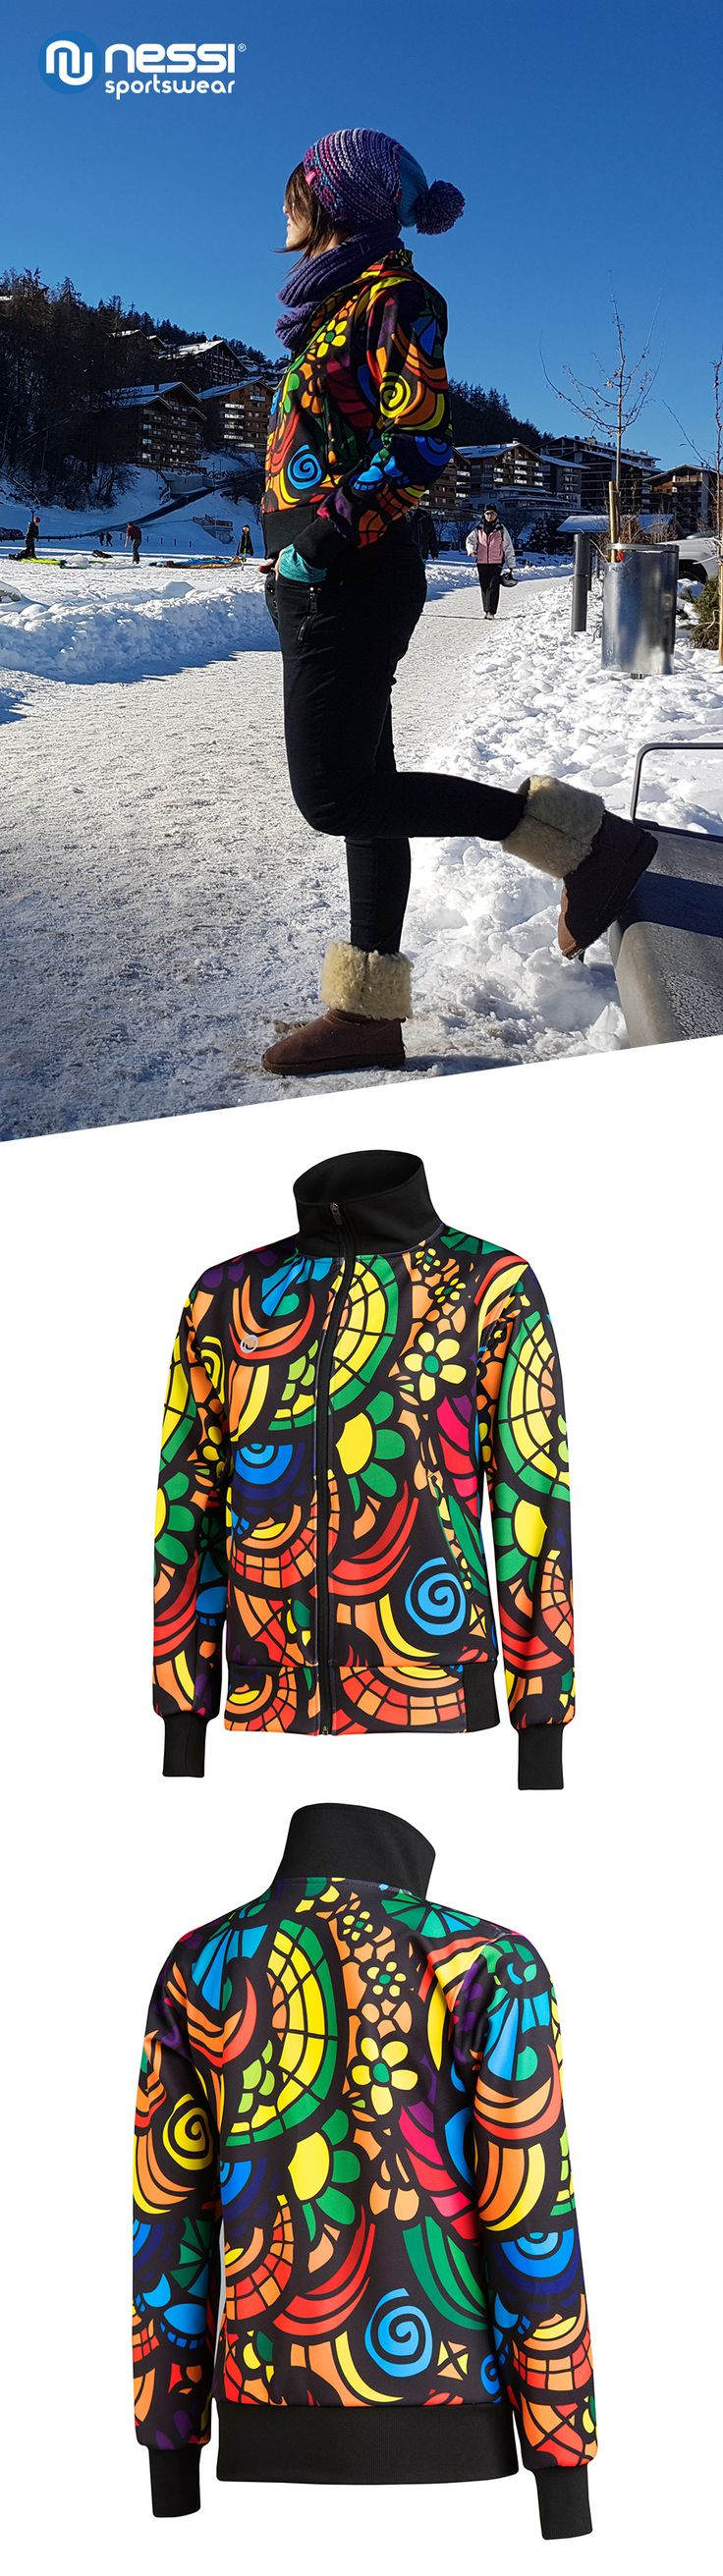 Bomber jacket, new collection 2017, 80's style, 90's style, sports fashion, colored mosaic.